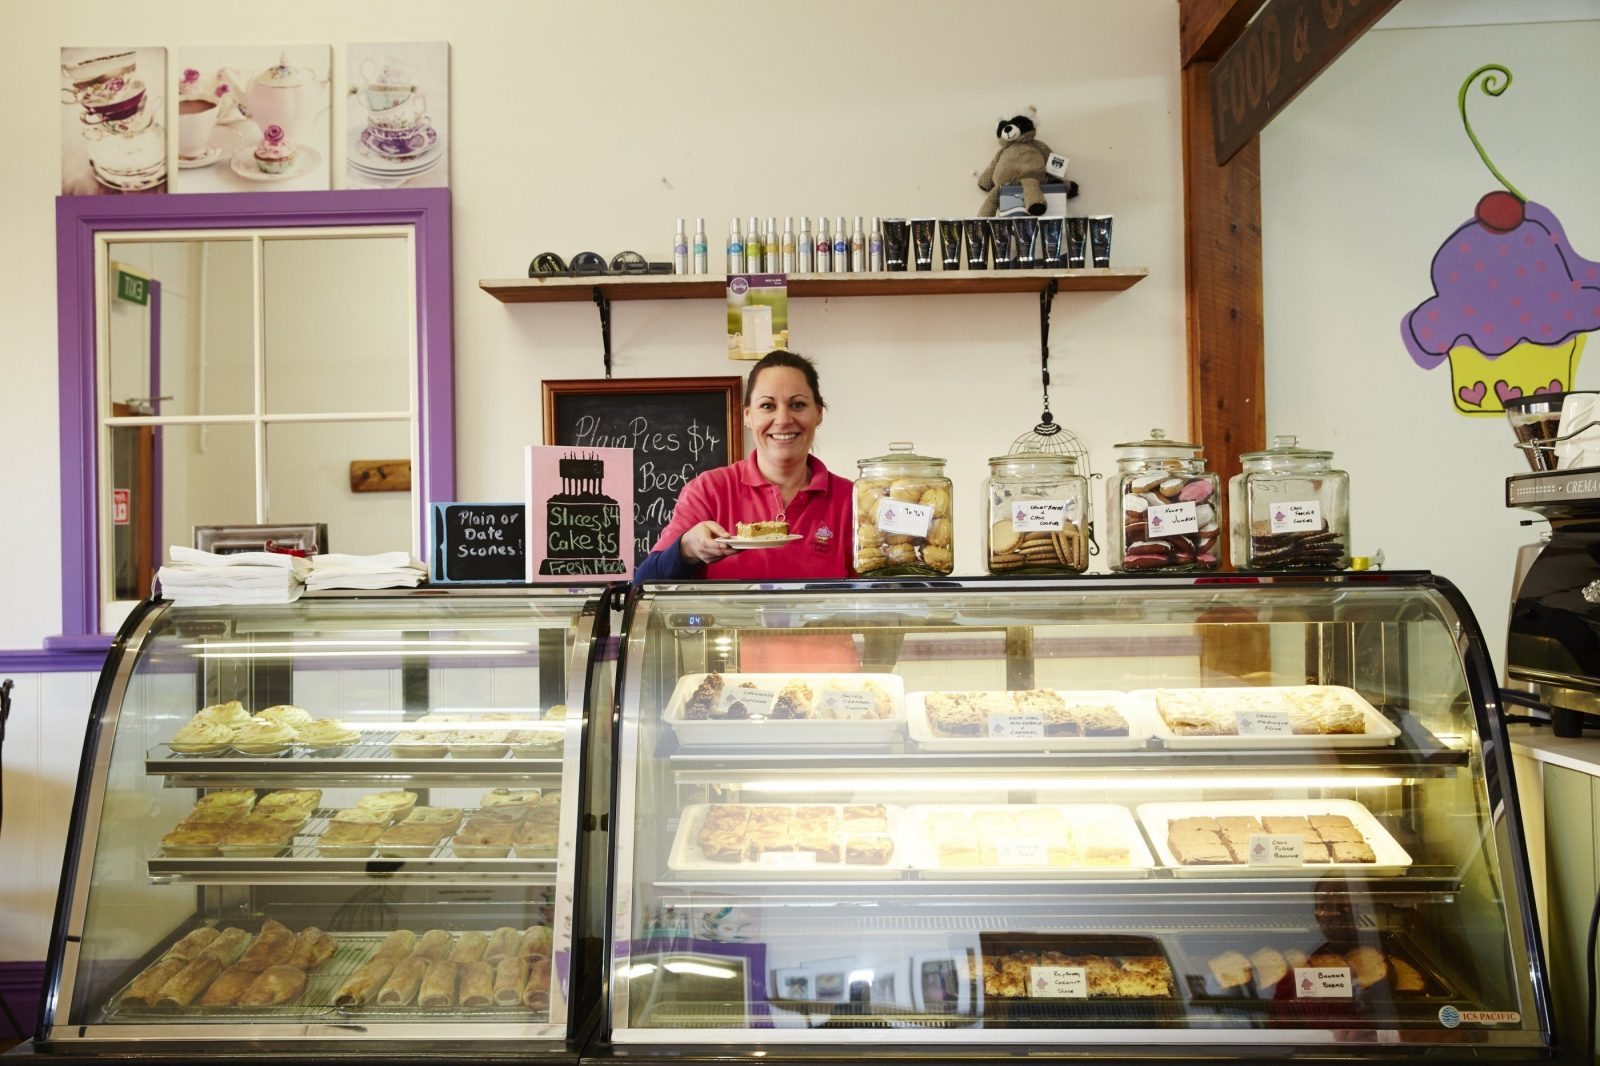 Gluten-free baked goods in the cafe/bakery